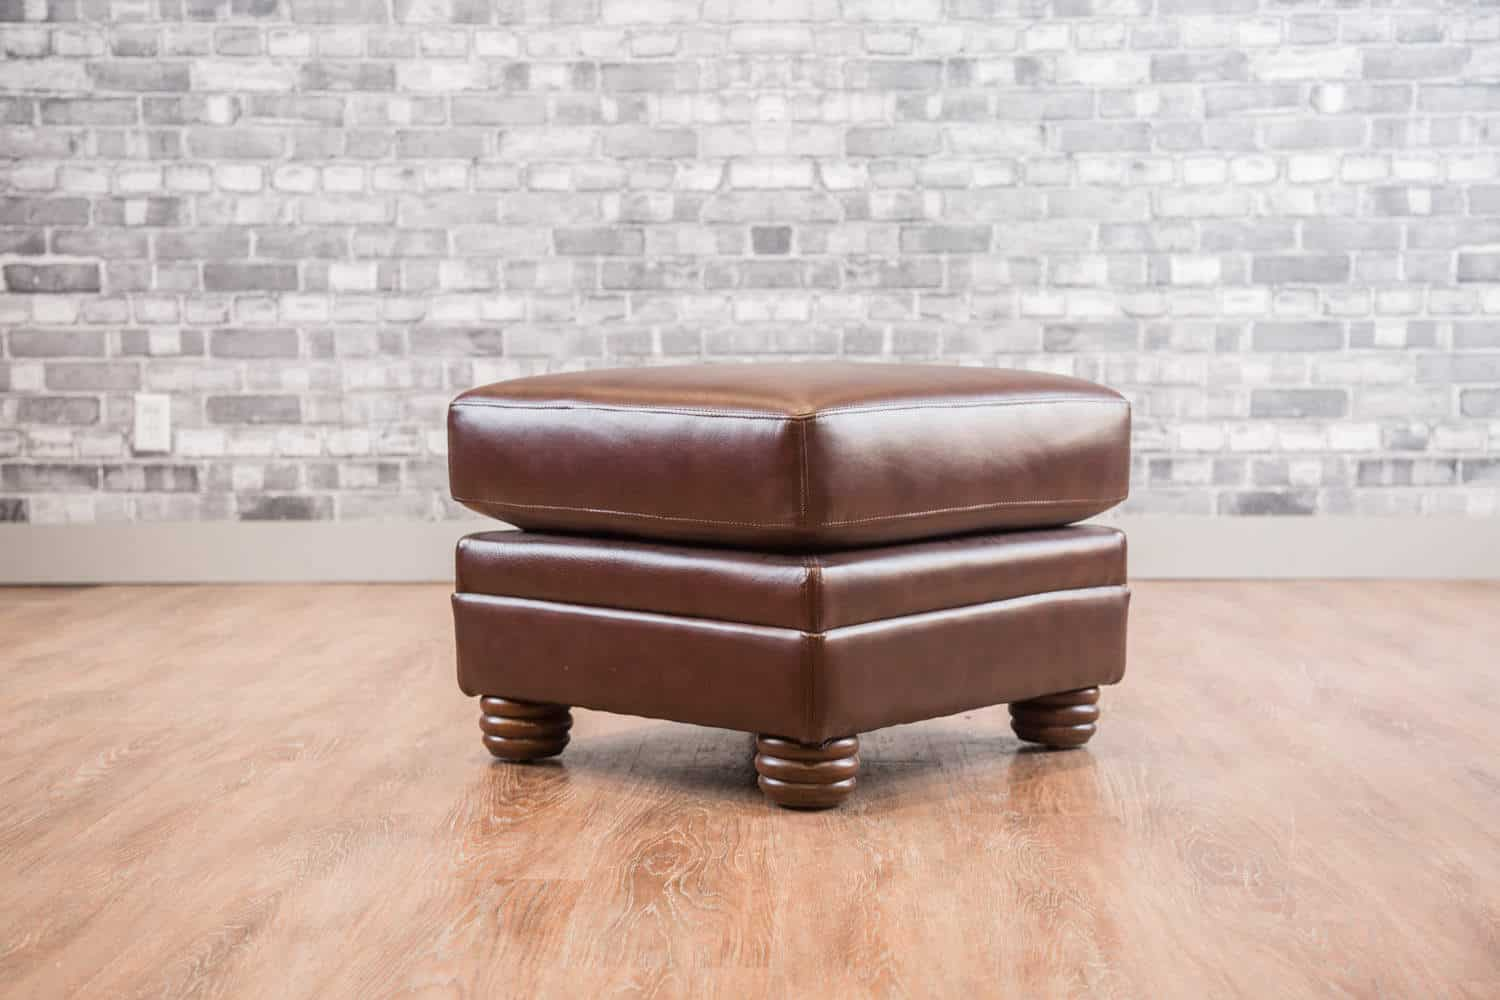 The Small Leather Ottoman Collection